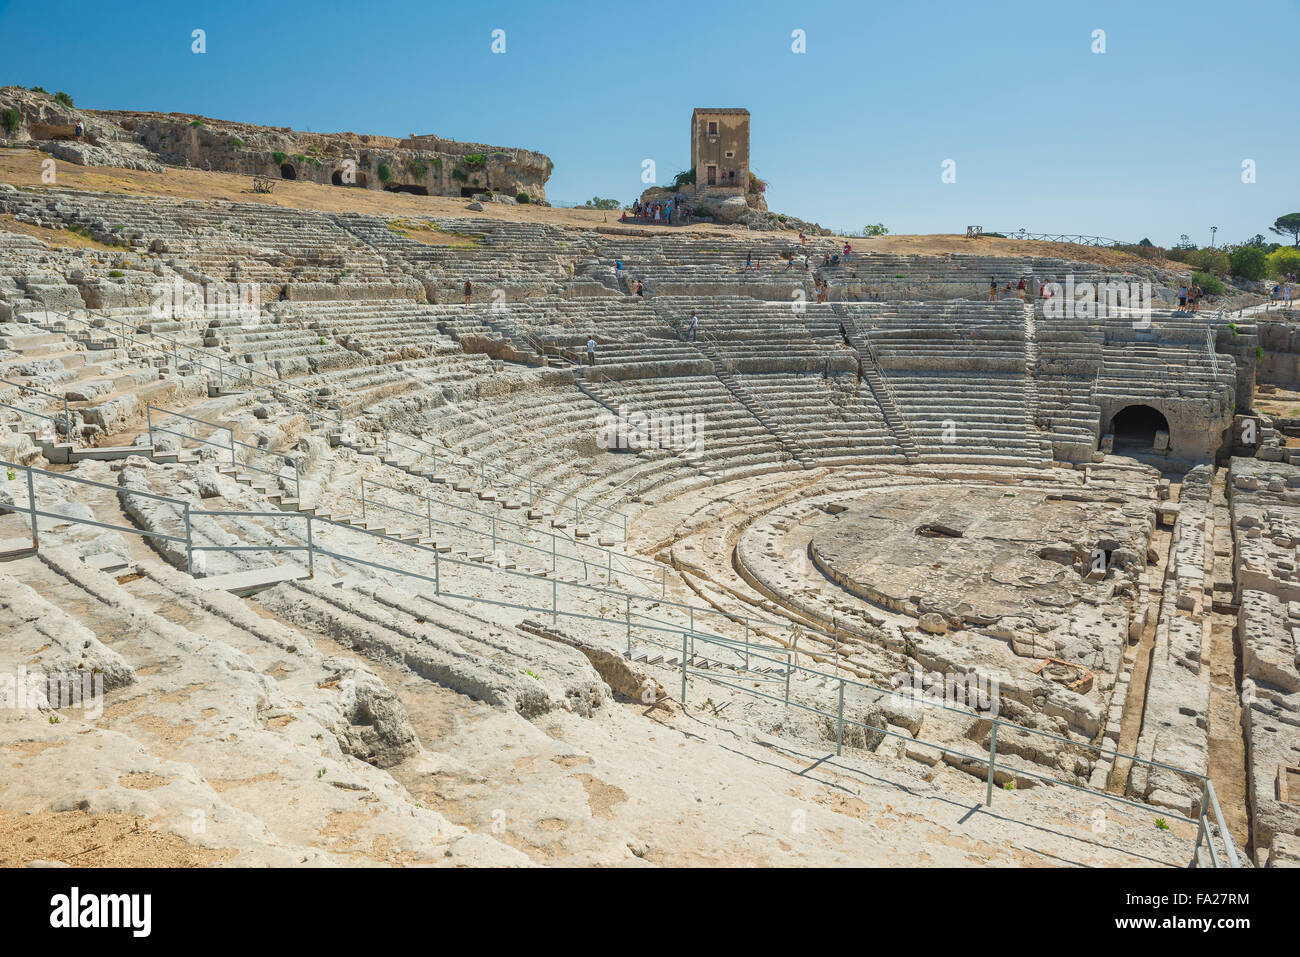 Teatro Greco Syracuse, view of the auditorium of the ancient Greek theatre in the Archaeological Park in  Syracuse - Stock Image